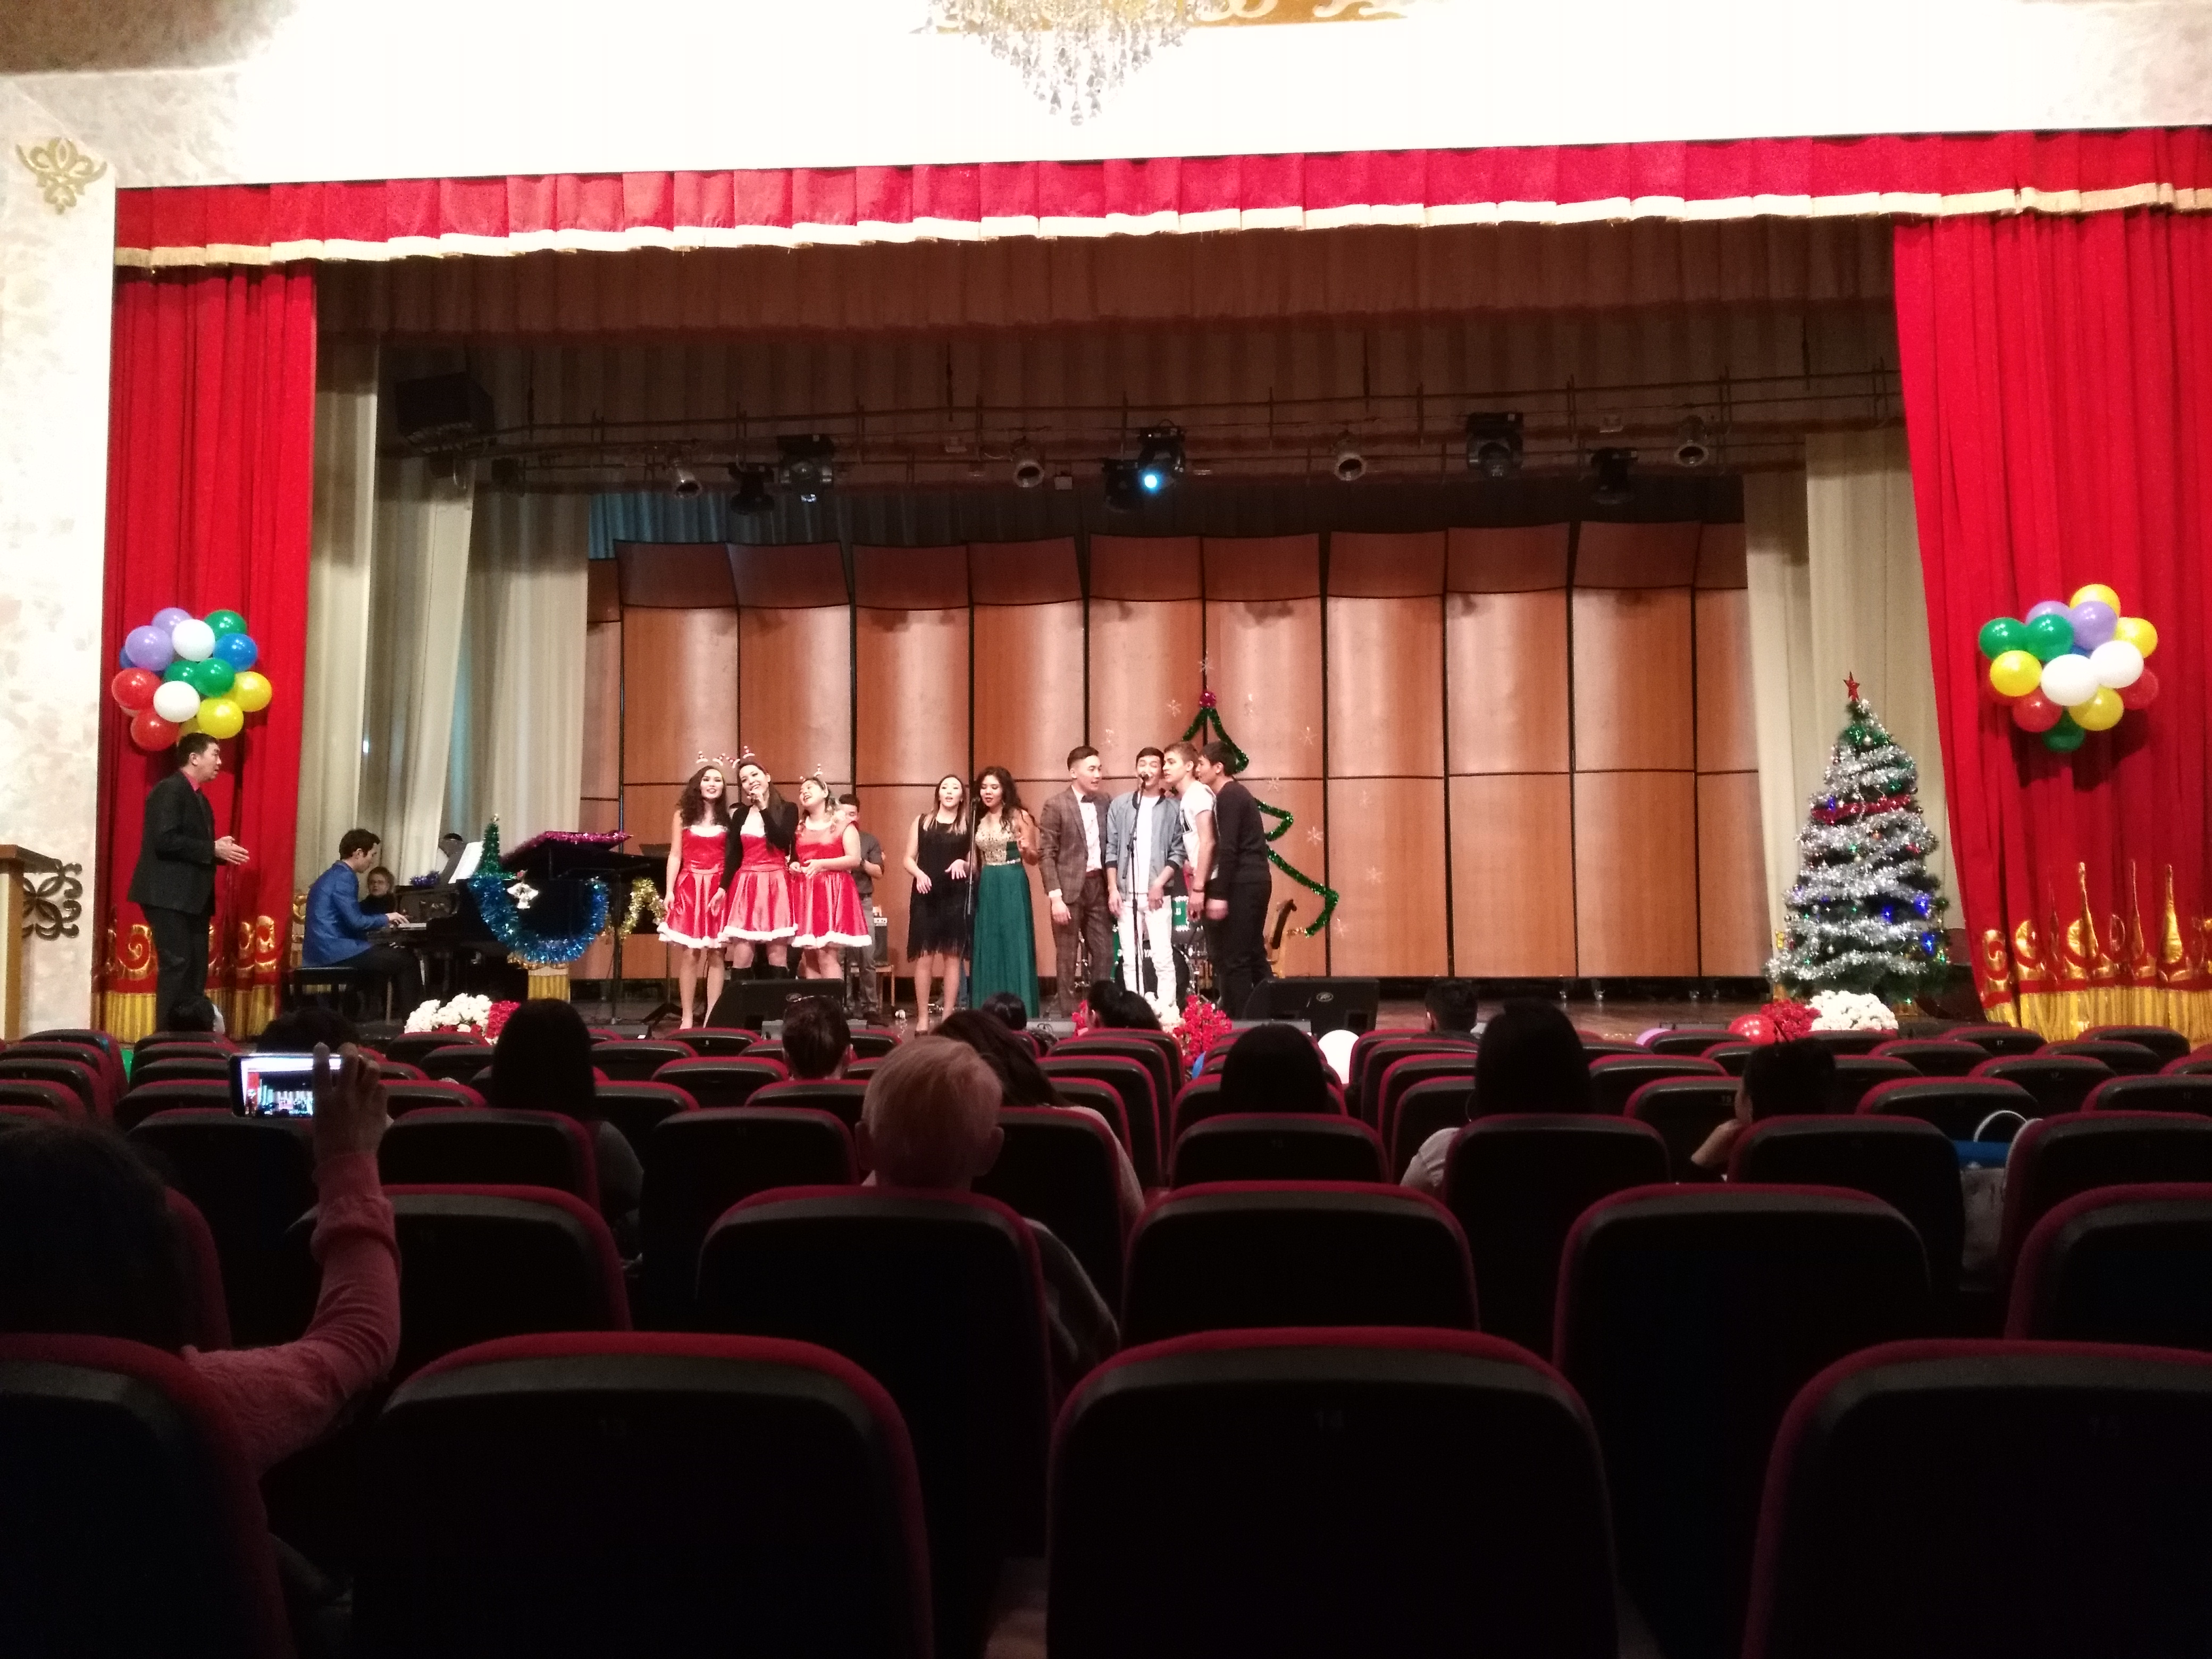 The grand commencement of the Christmas concert at the Kyrgyz National Conservatory.